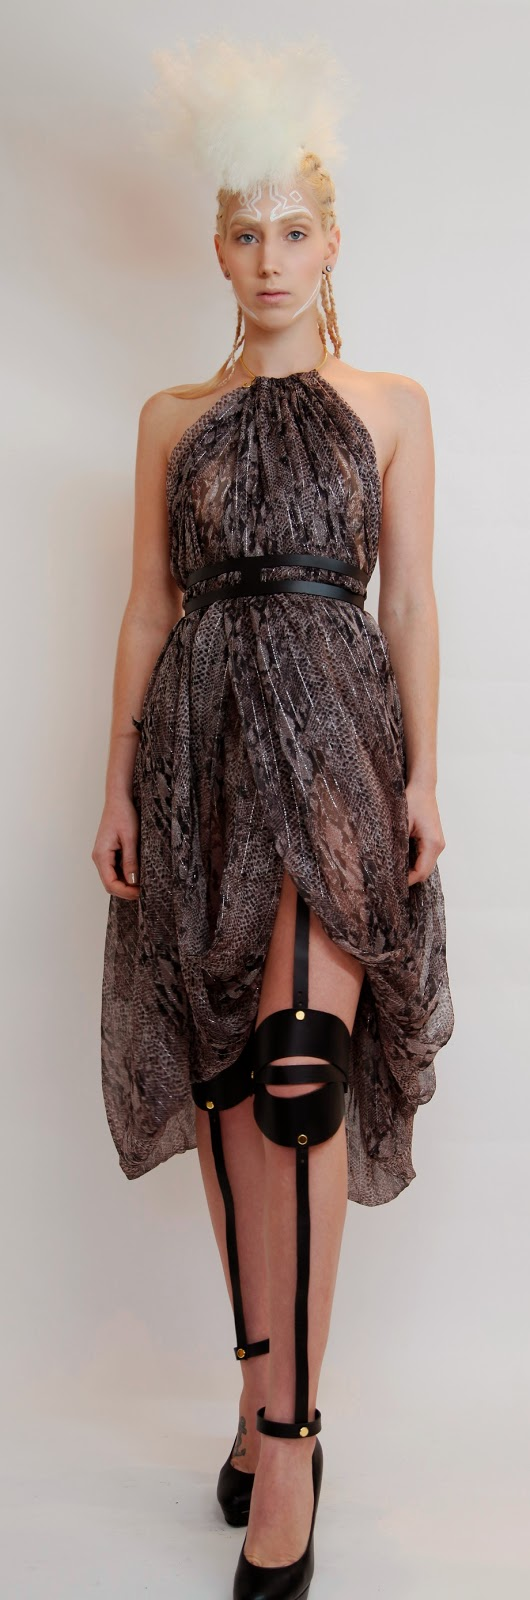 LOOK2FW14DRESS.JPG